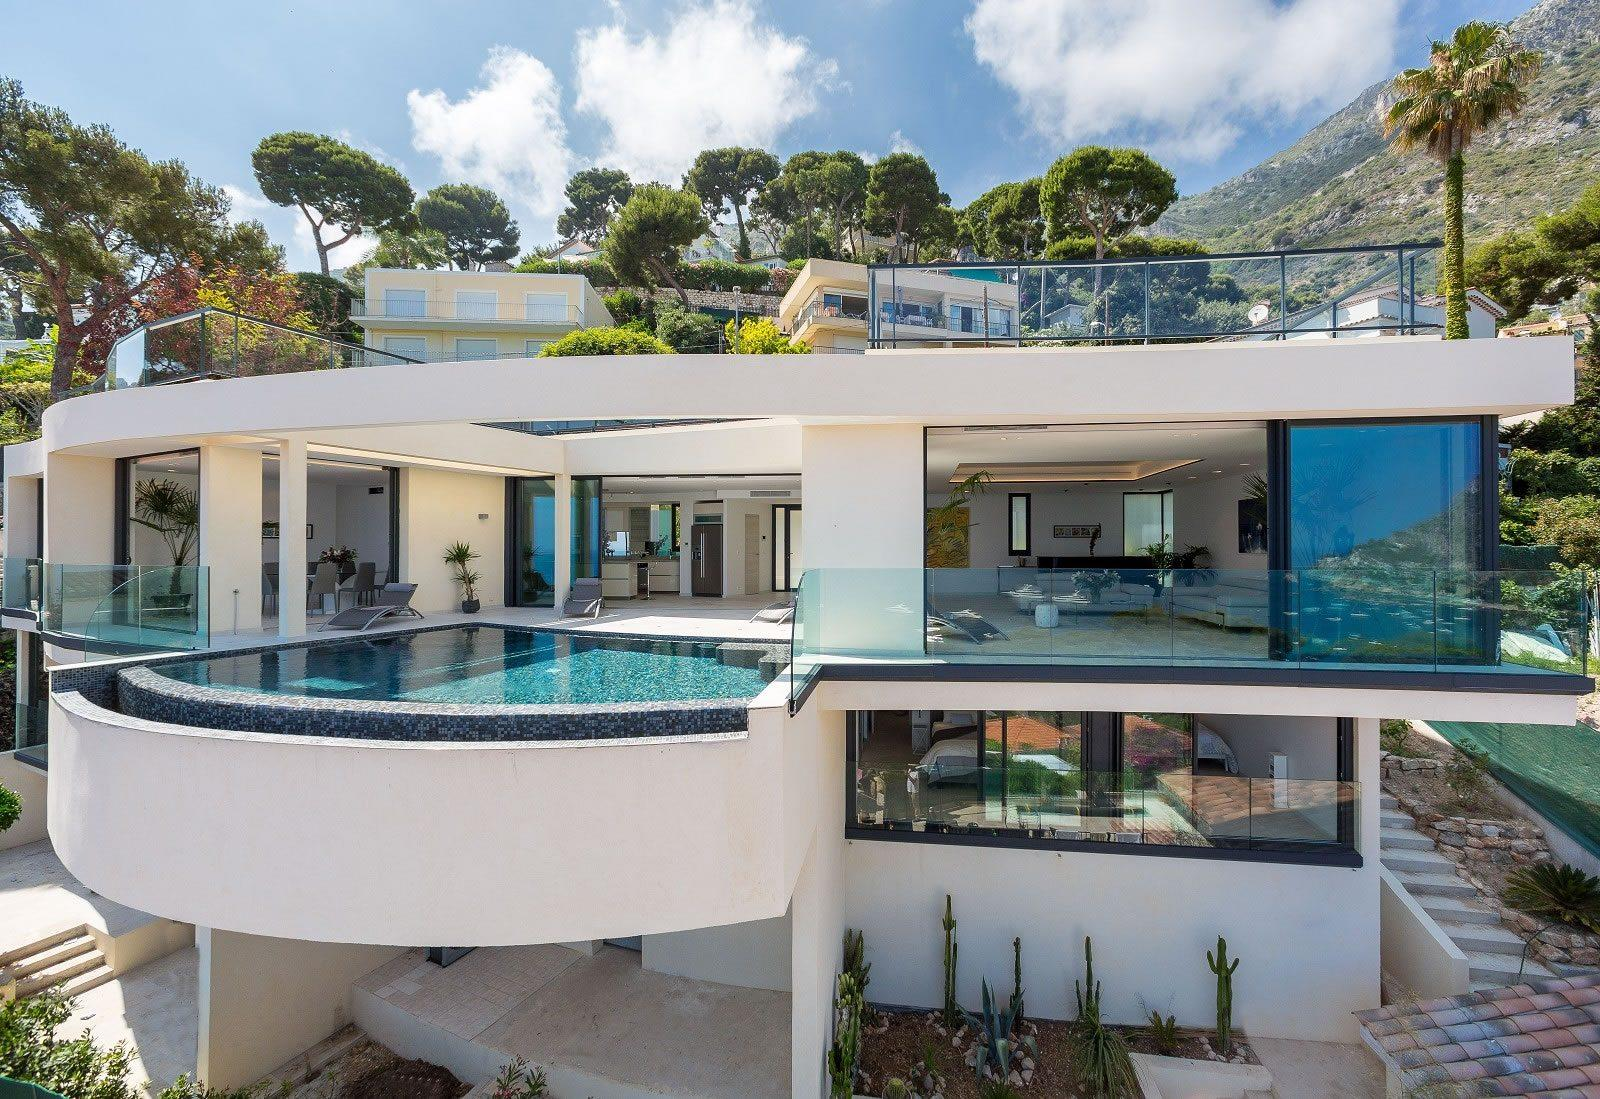 Pool Kaufen Sale Luxury Villa With Infinity Pool And Mediterranean Sea View